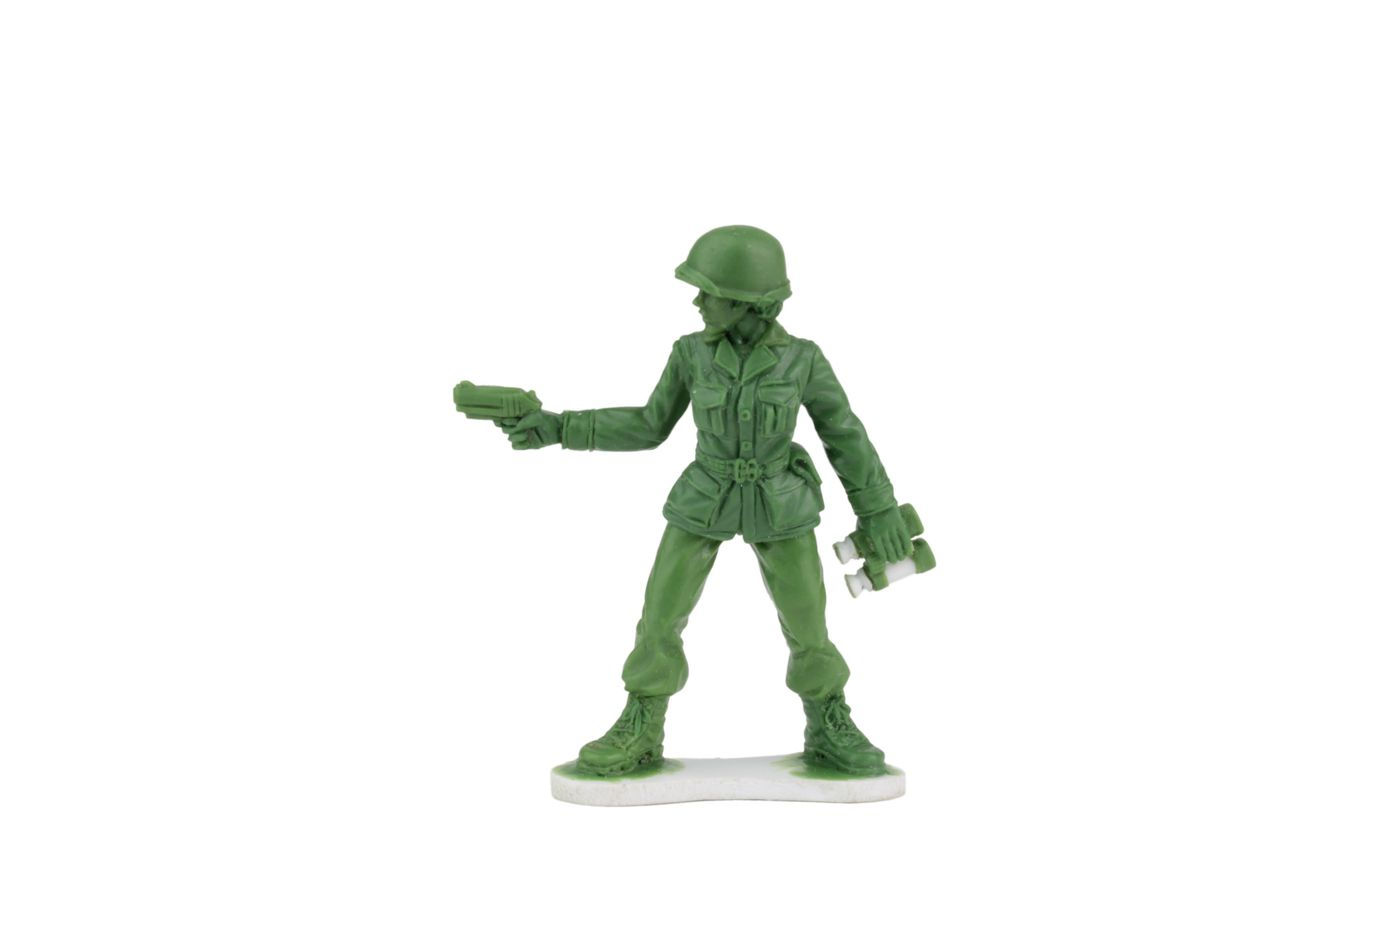 Little green women soldiers are coming soon, thanks to a